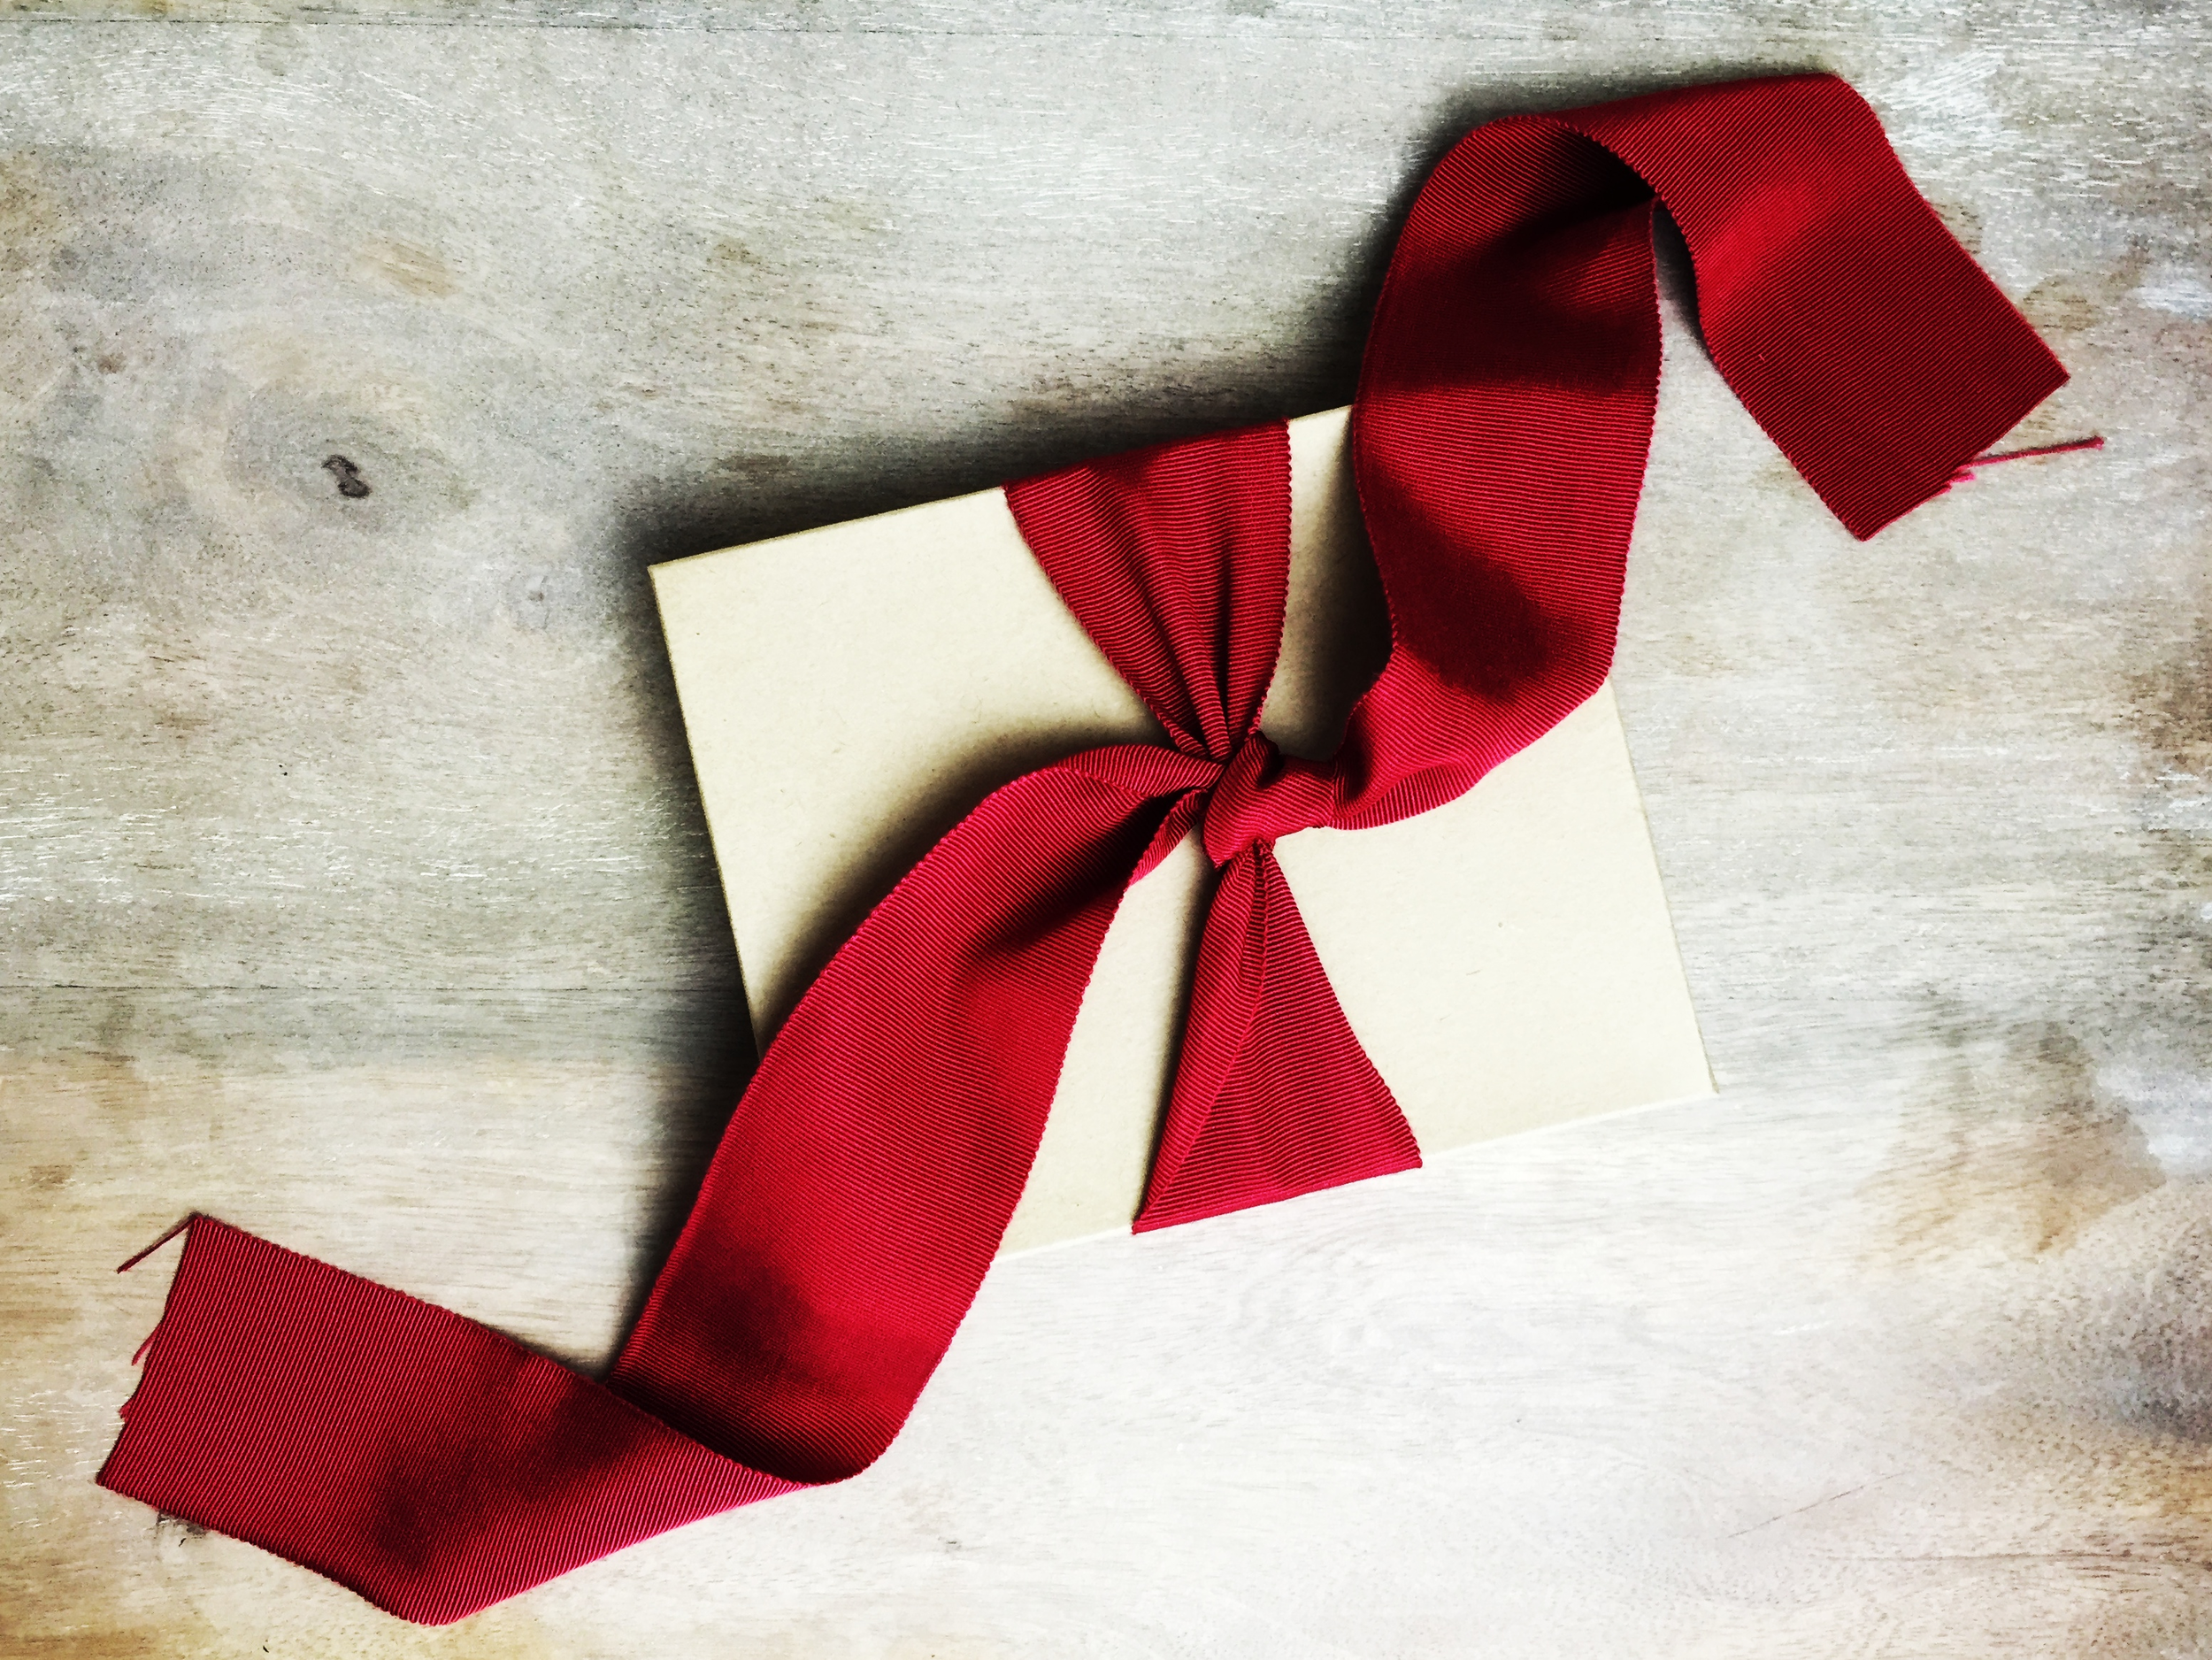 How To Tie A Pretty Bow Kiley Durham Jewelry And Design